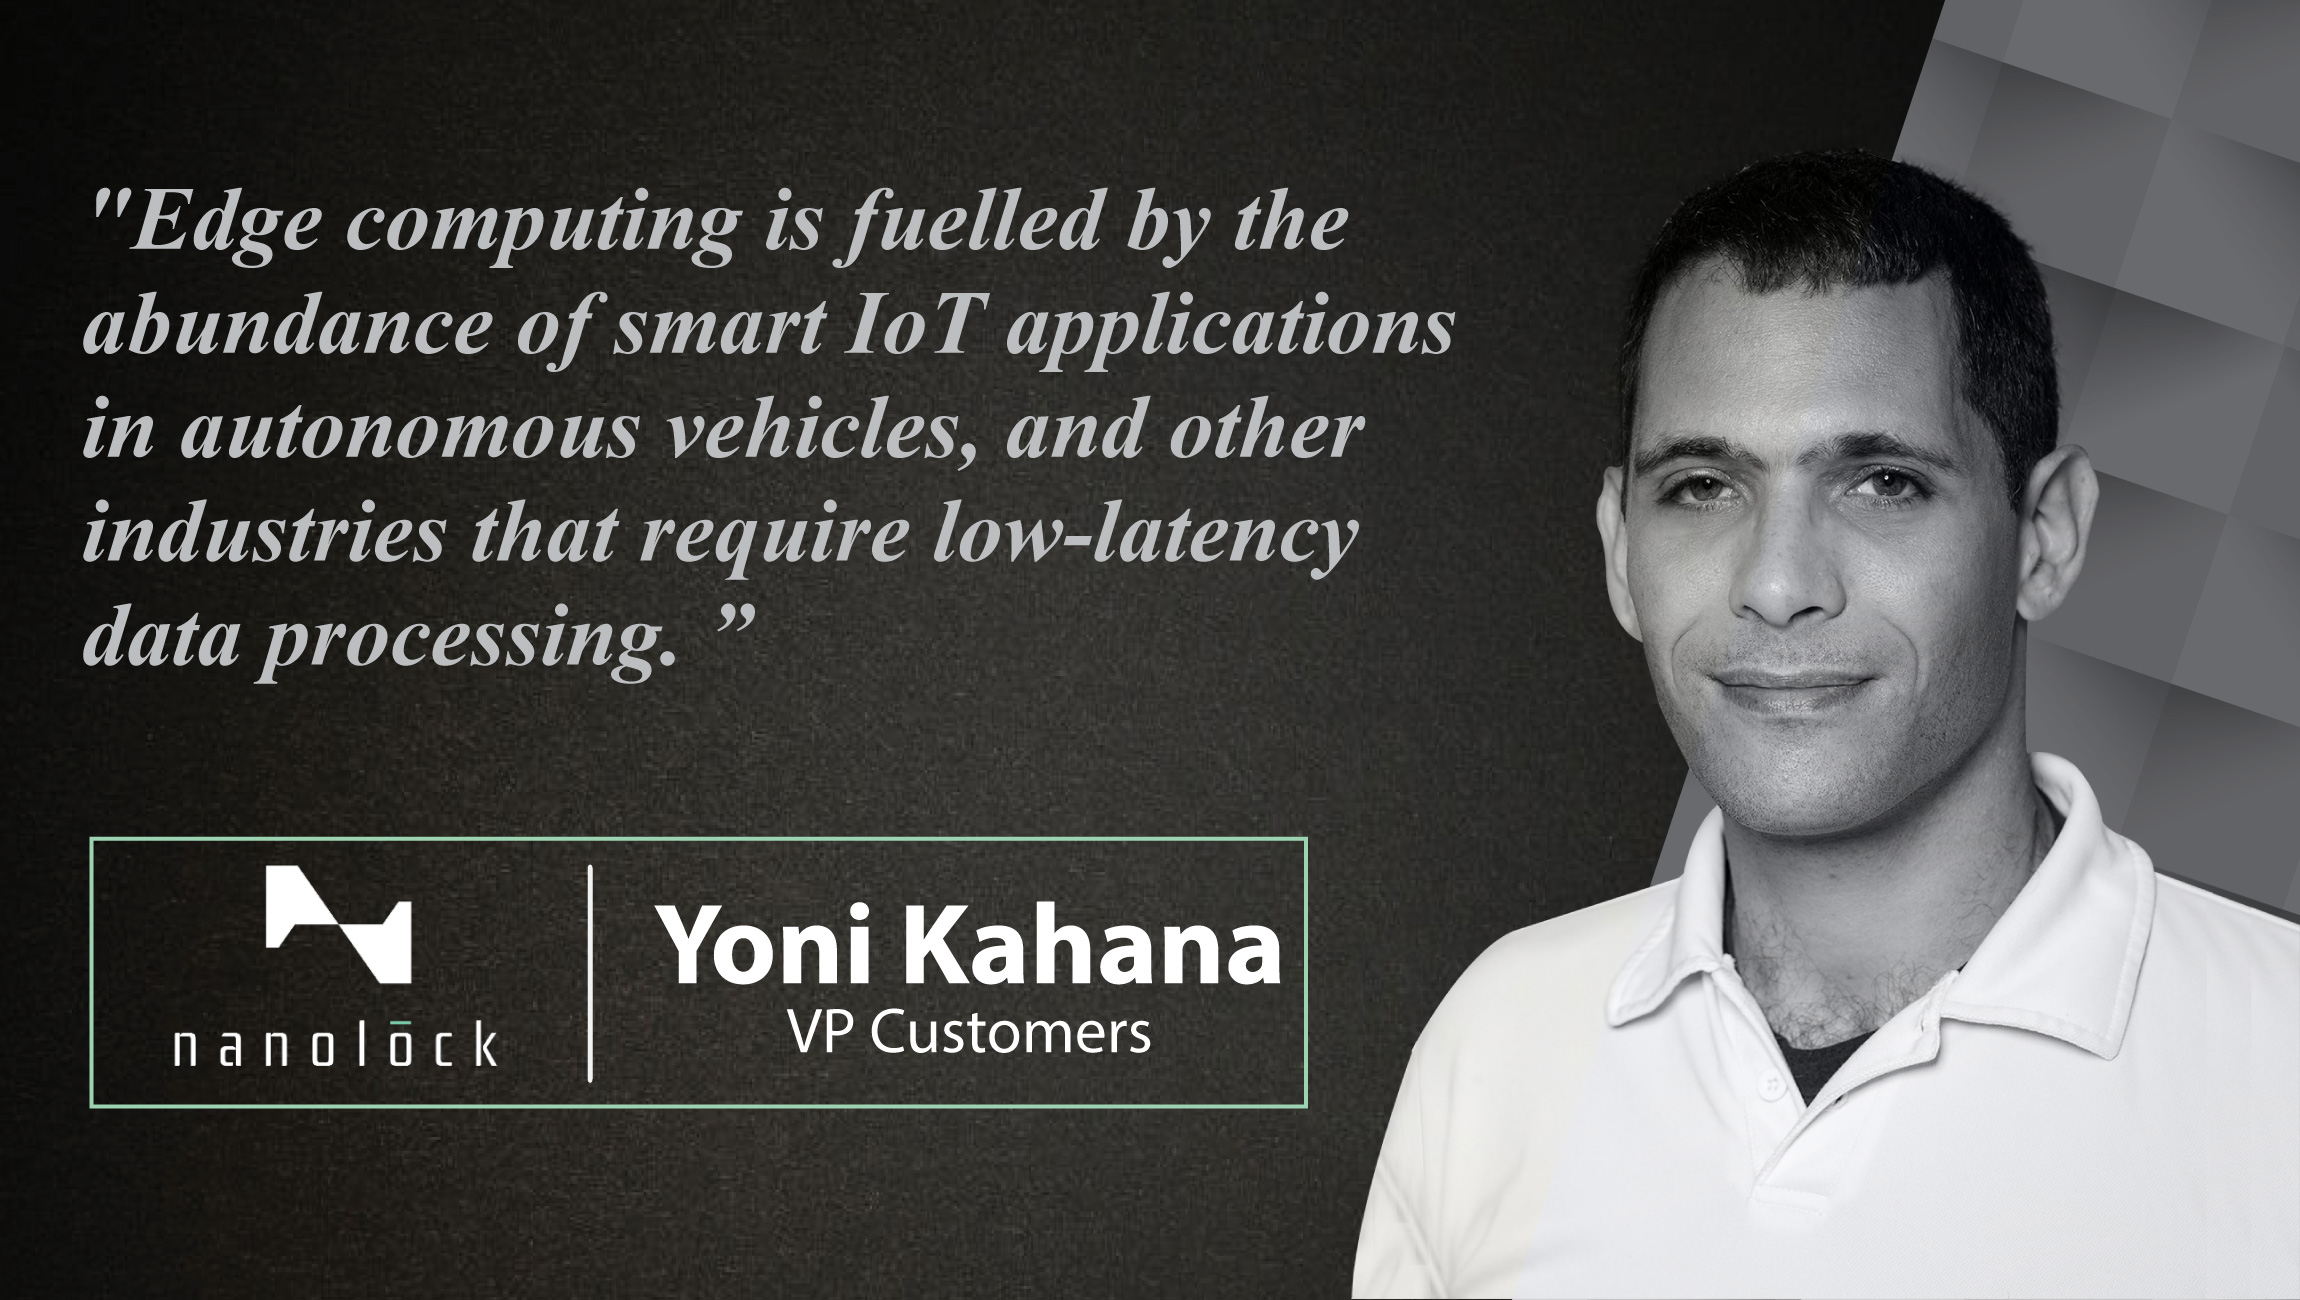 Interview With Yoni Kahana, VP Customers of NanoLock Security- cue card